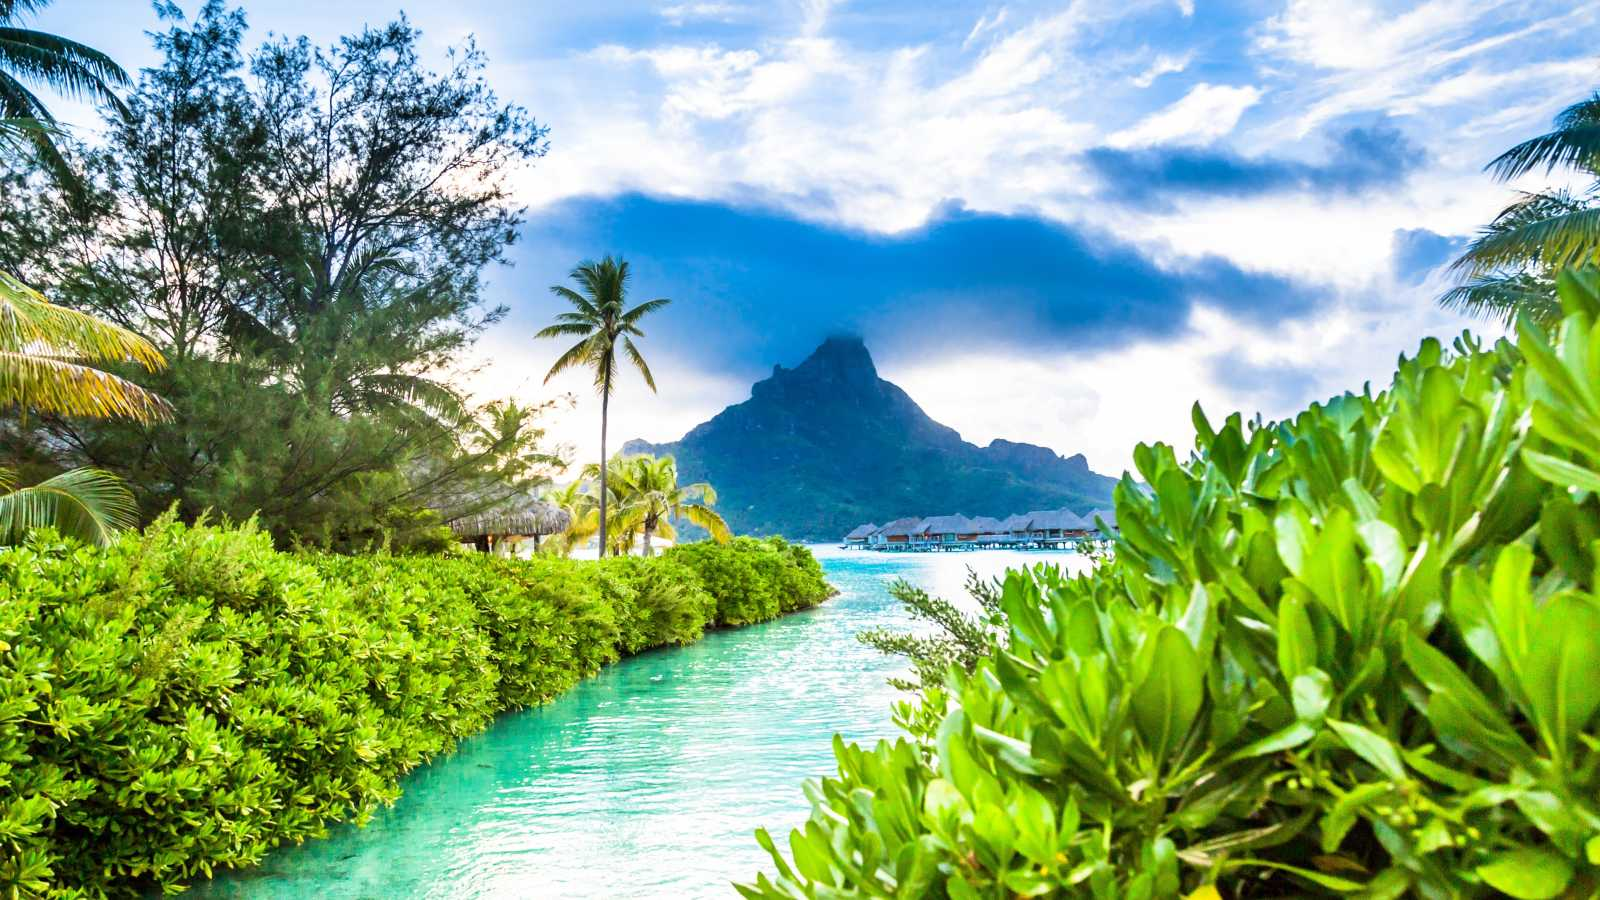 Go on a French Polynesia vacation to see turquoise waters surrounded by greenery, giving way to the ocean and a mountain looms in the background.